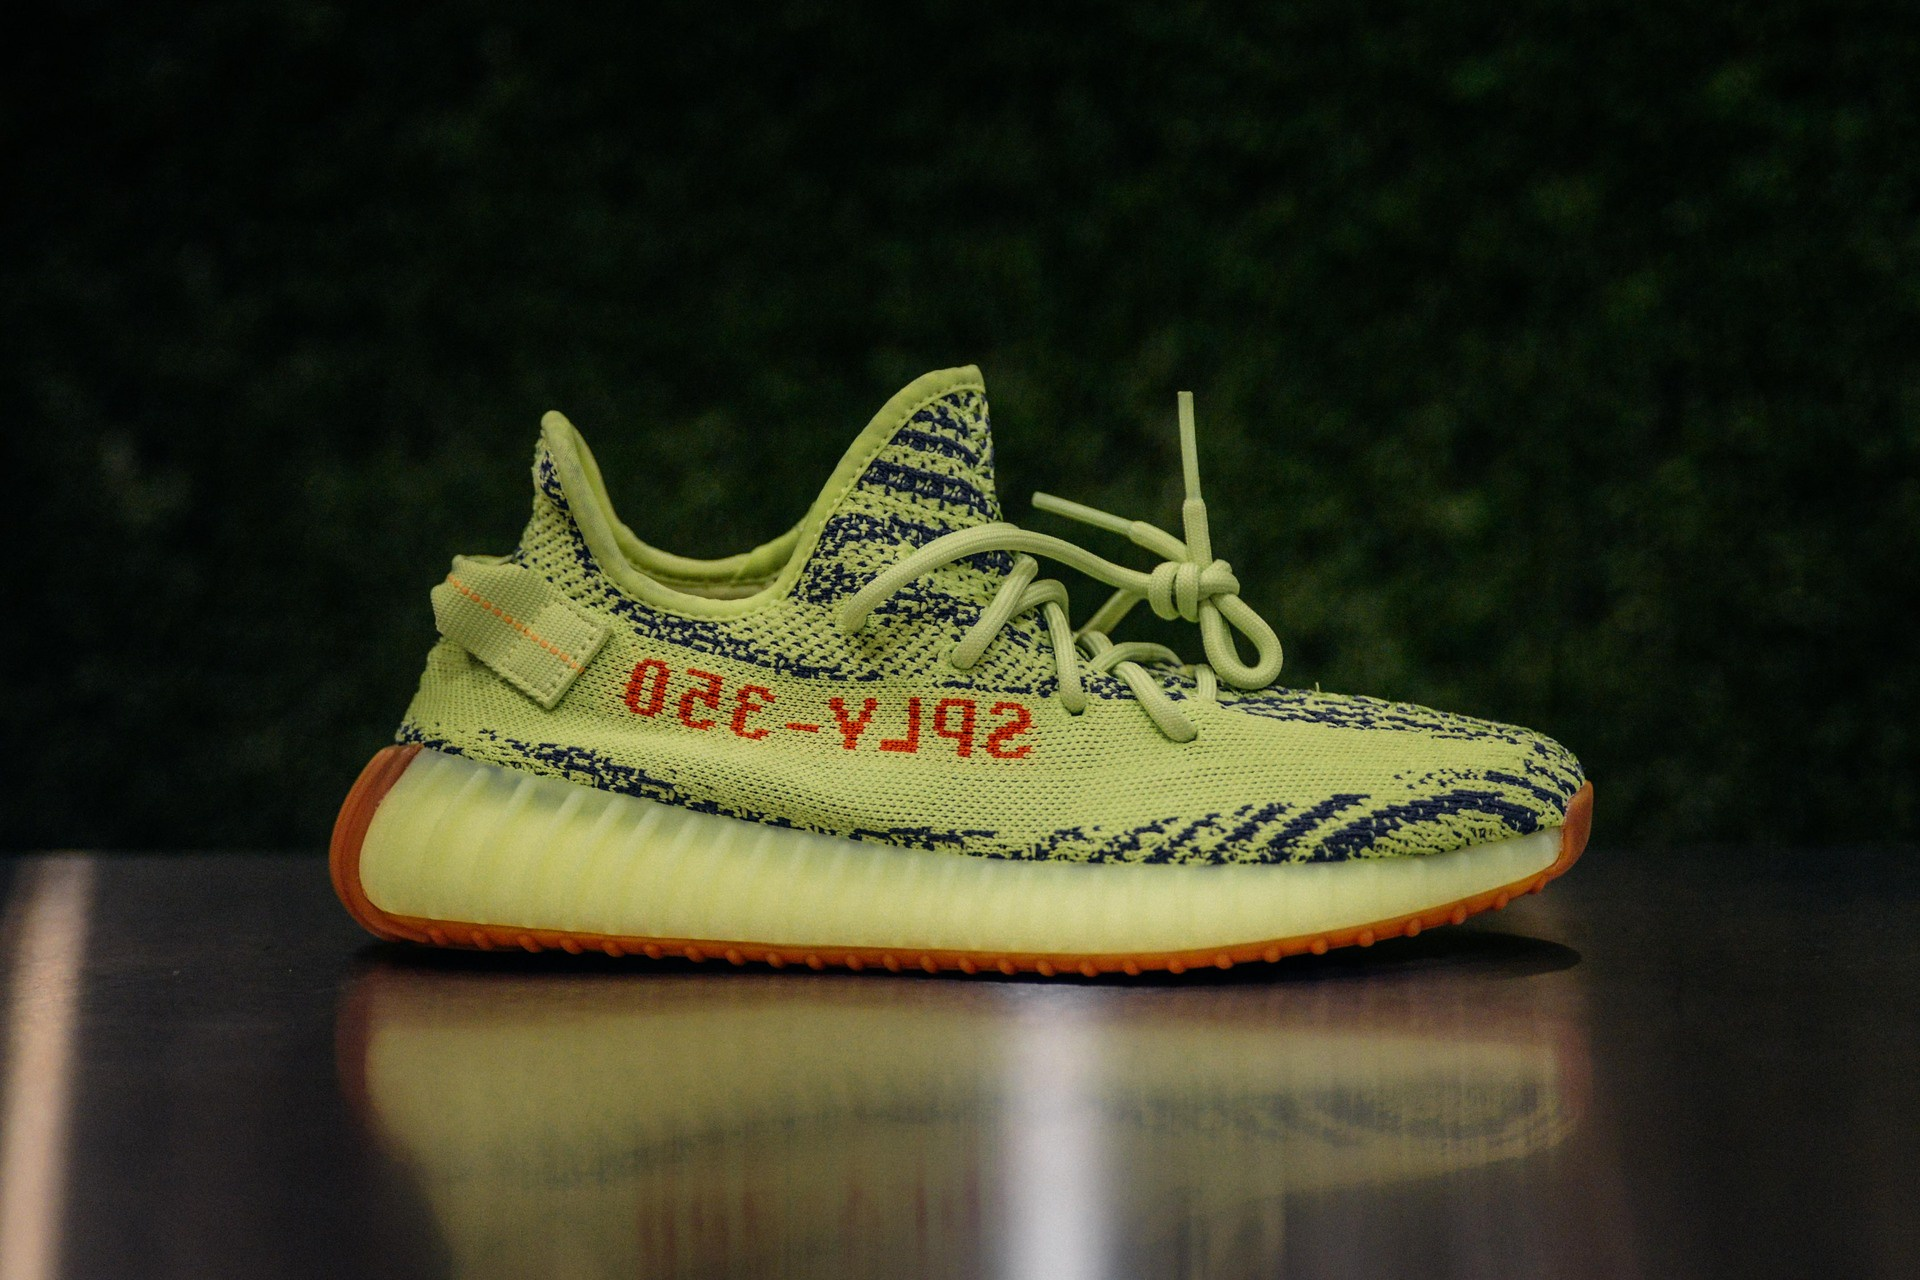 adidas yeezy boost 350 v2 frozen yellow